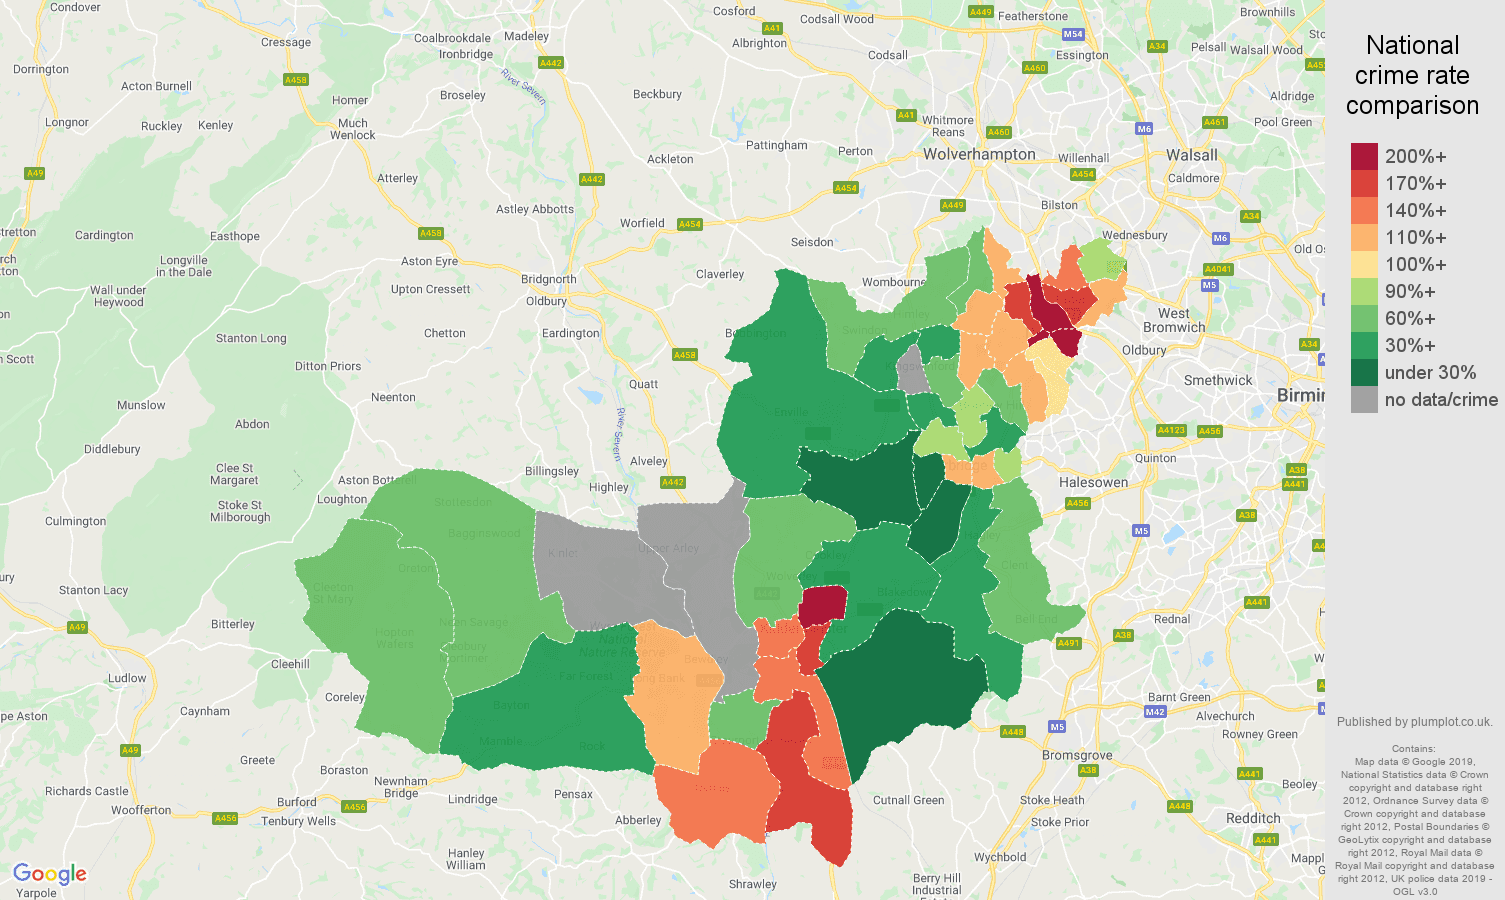 Dudley possession of weapons crime rate comparison map